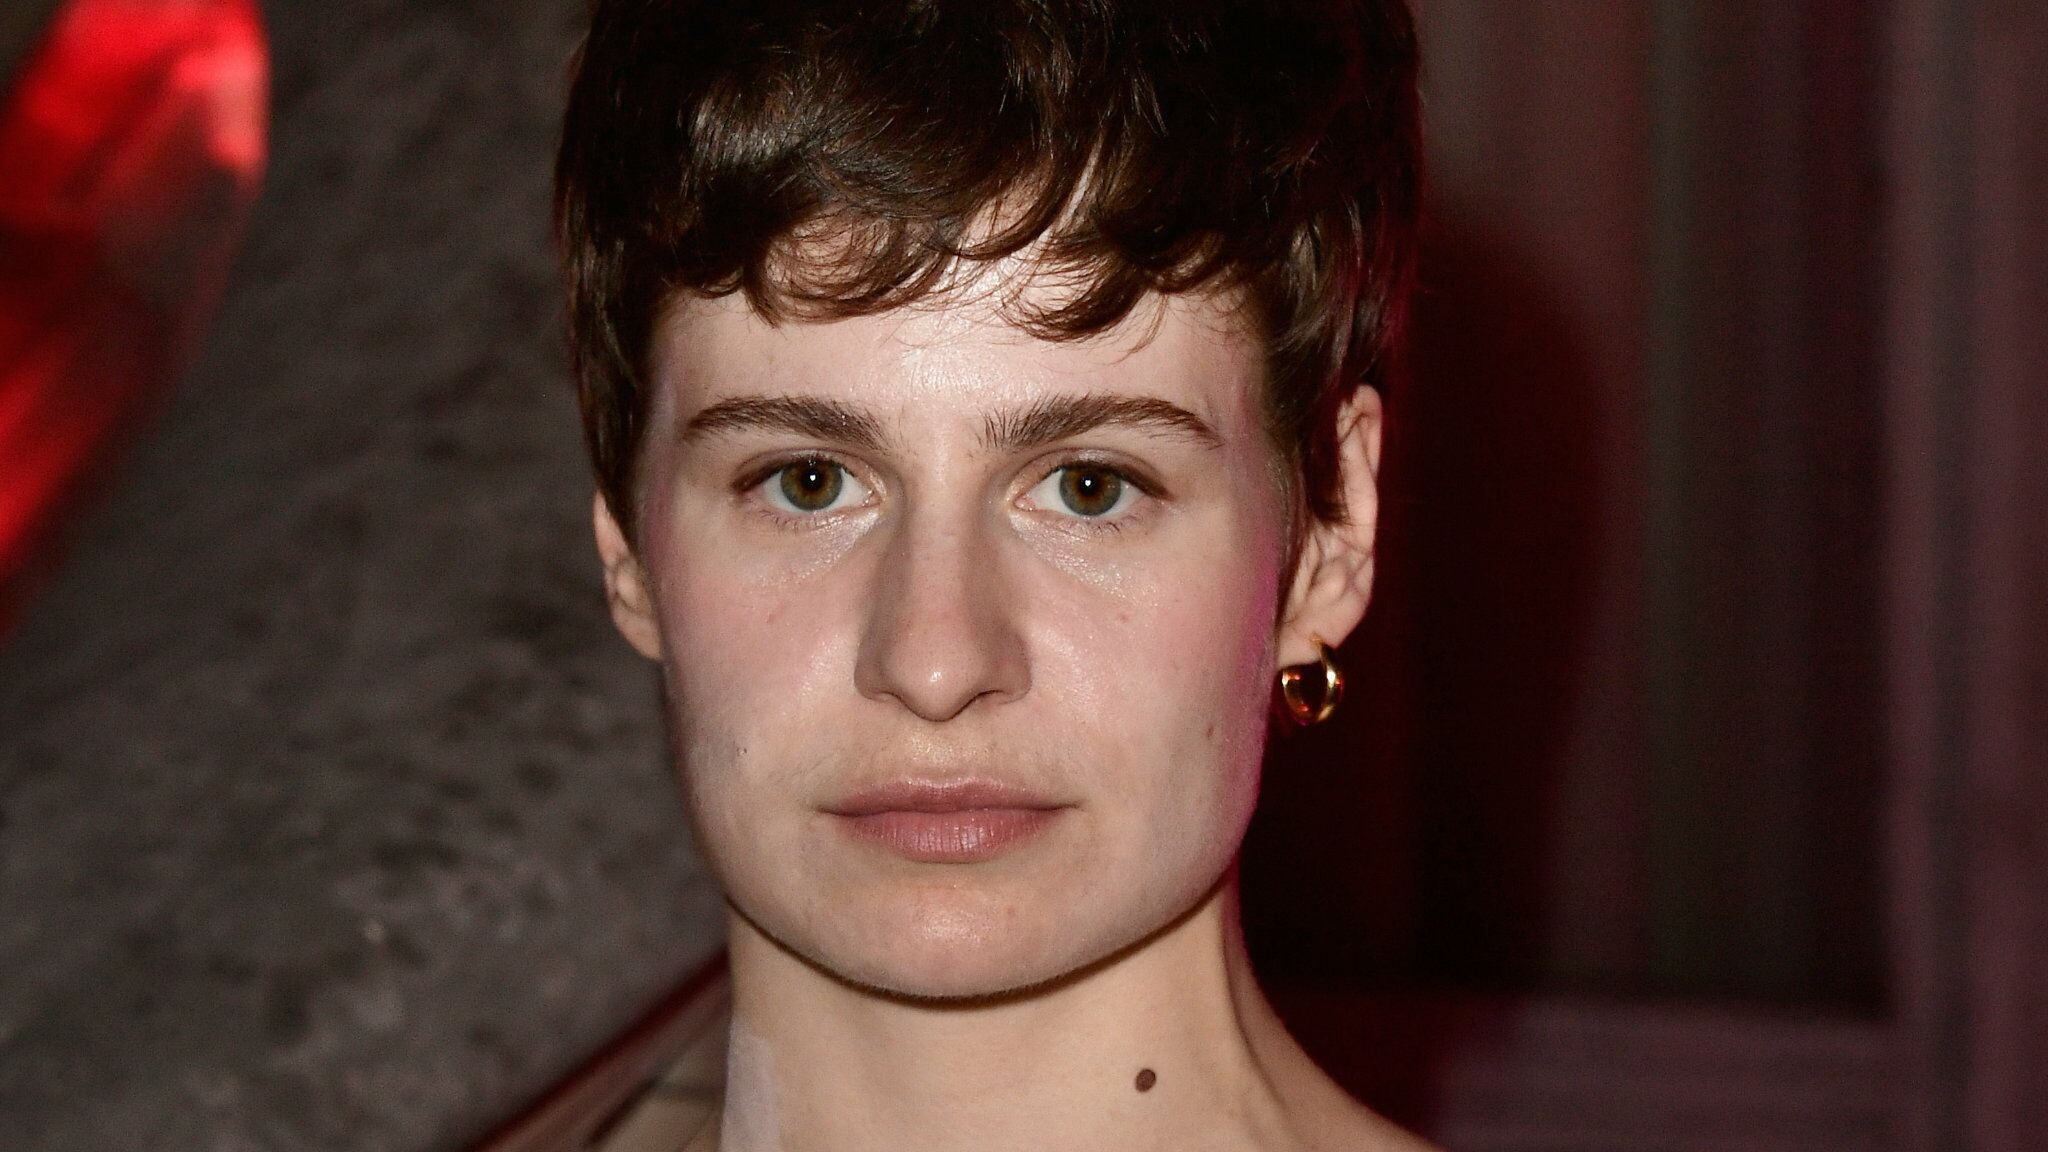 Christine And The Queens A Nouveau Accusee De Plagiat Pour Le Clip De Sa Chanson 5 Dollars Voici